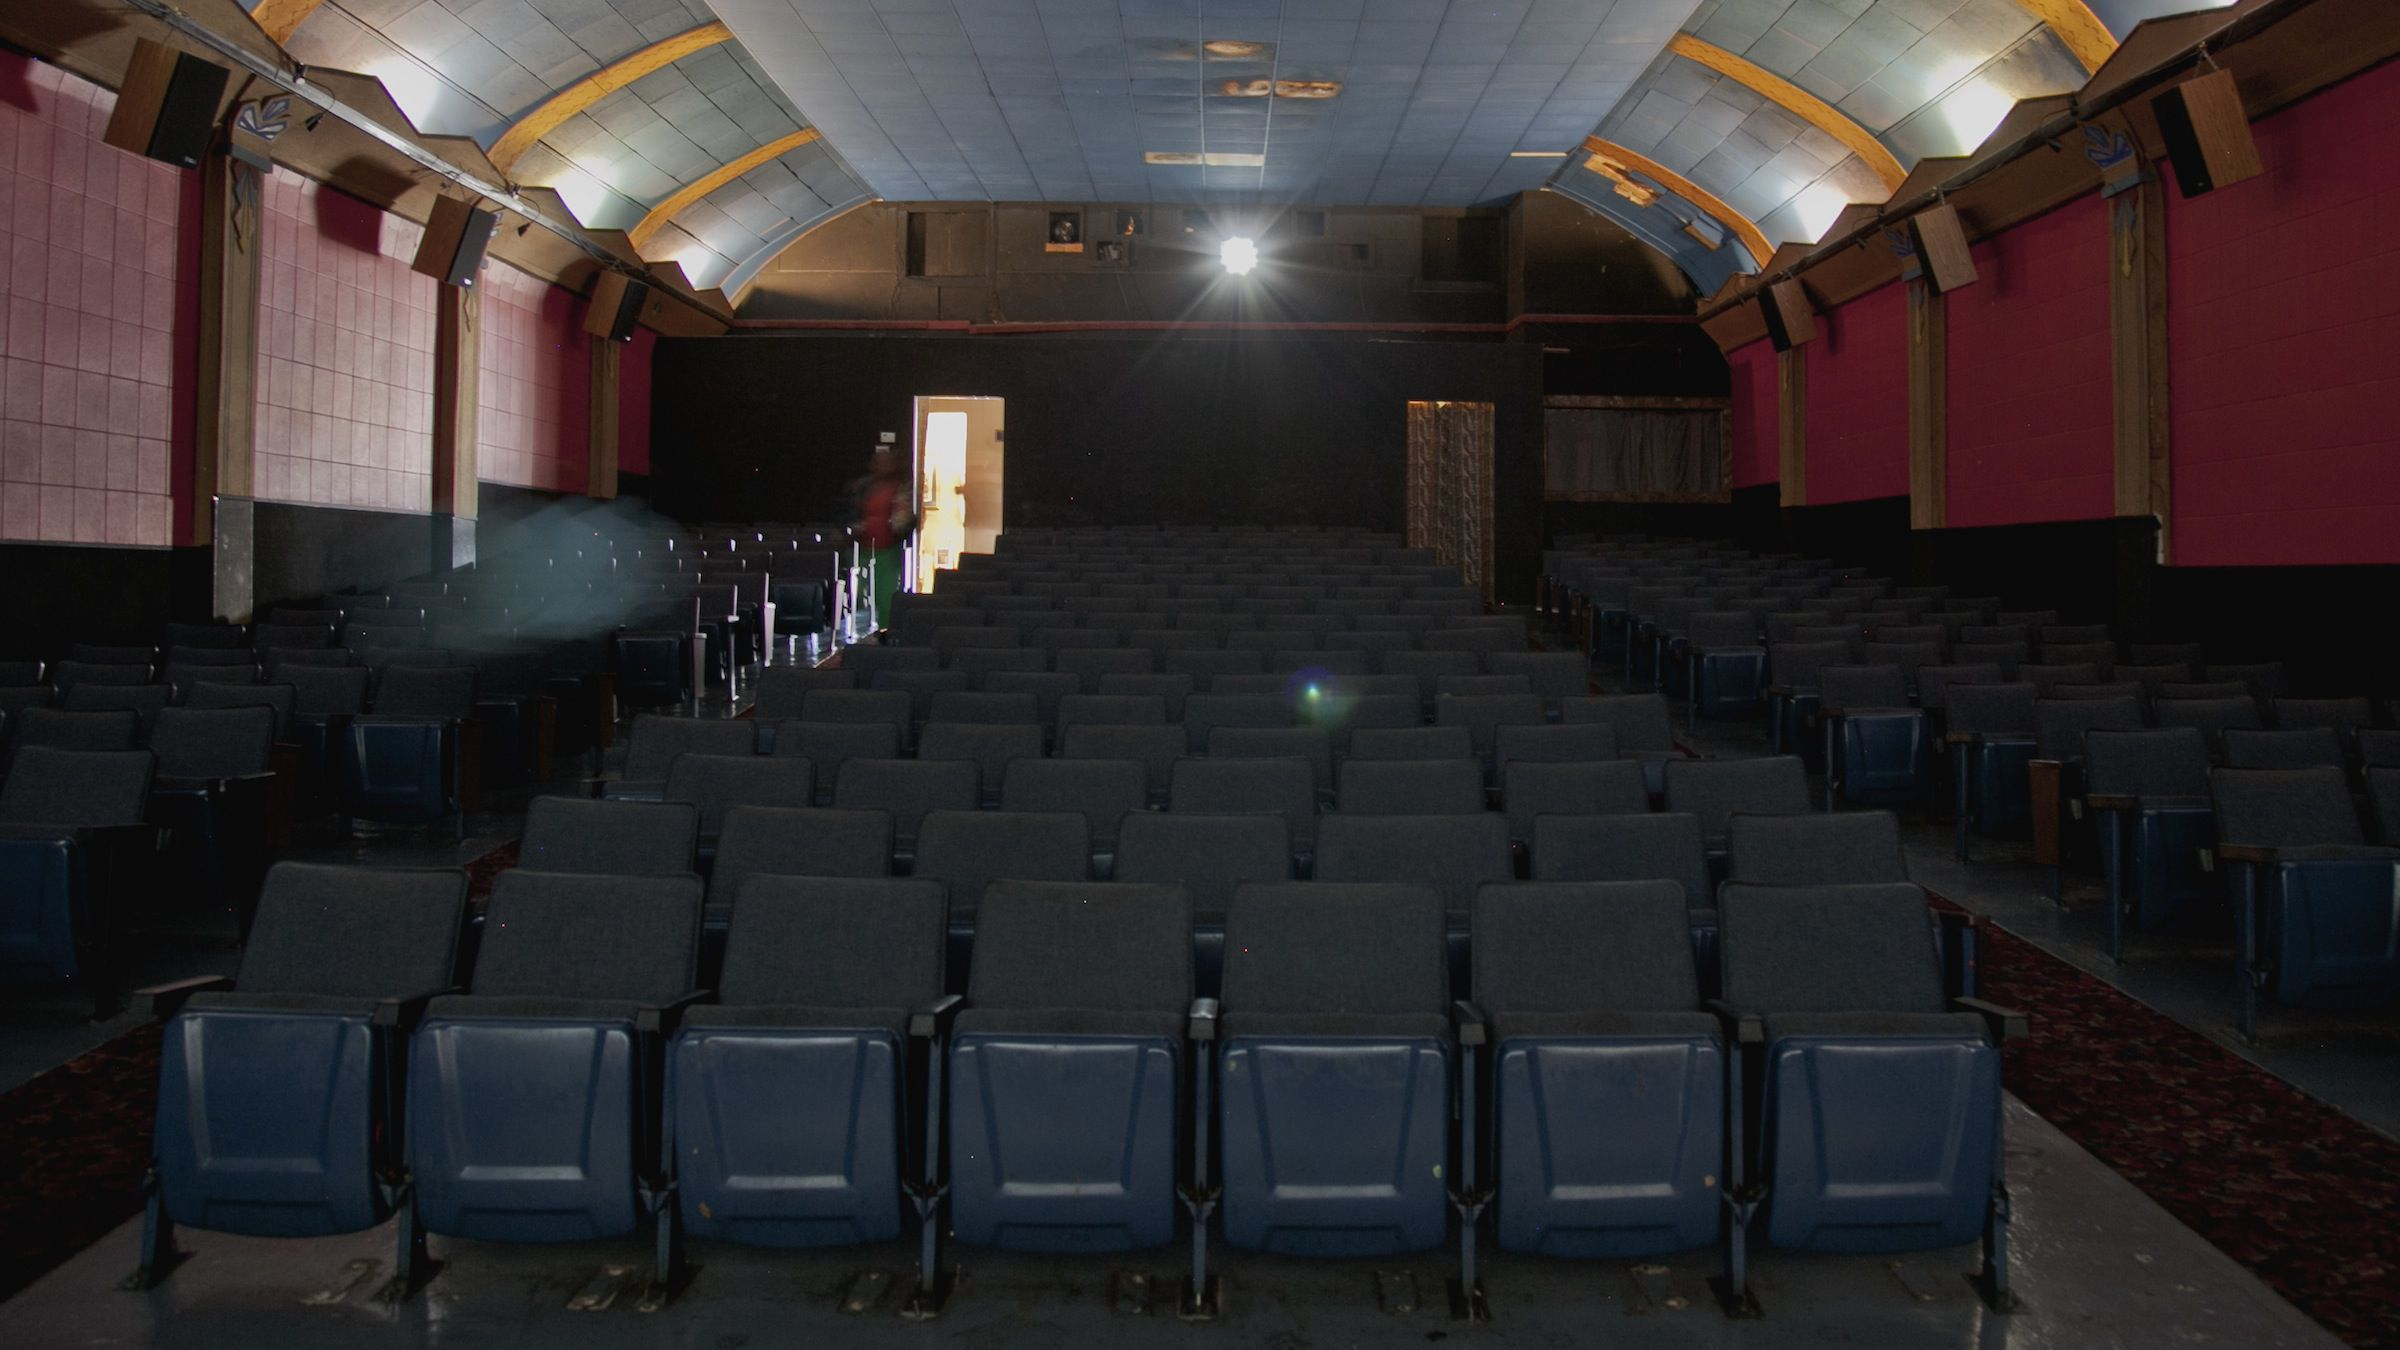 Cinemas may soon start replacing their screens with giant Samsung